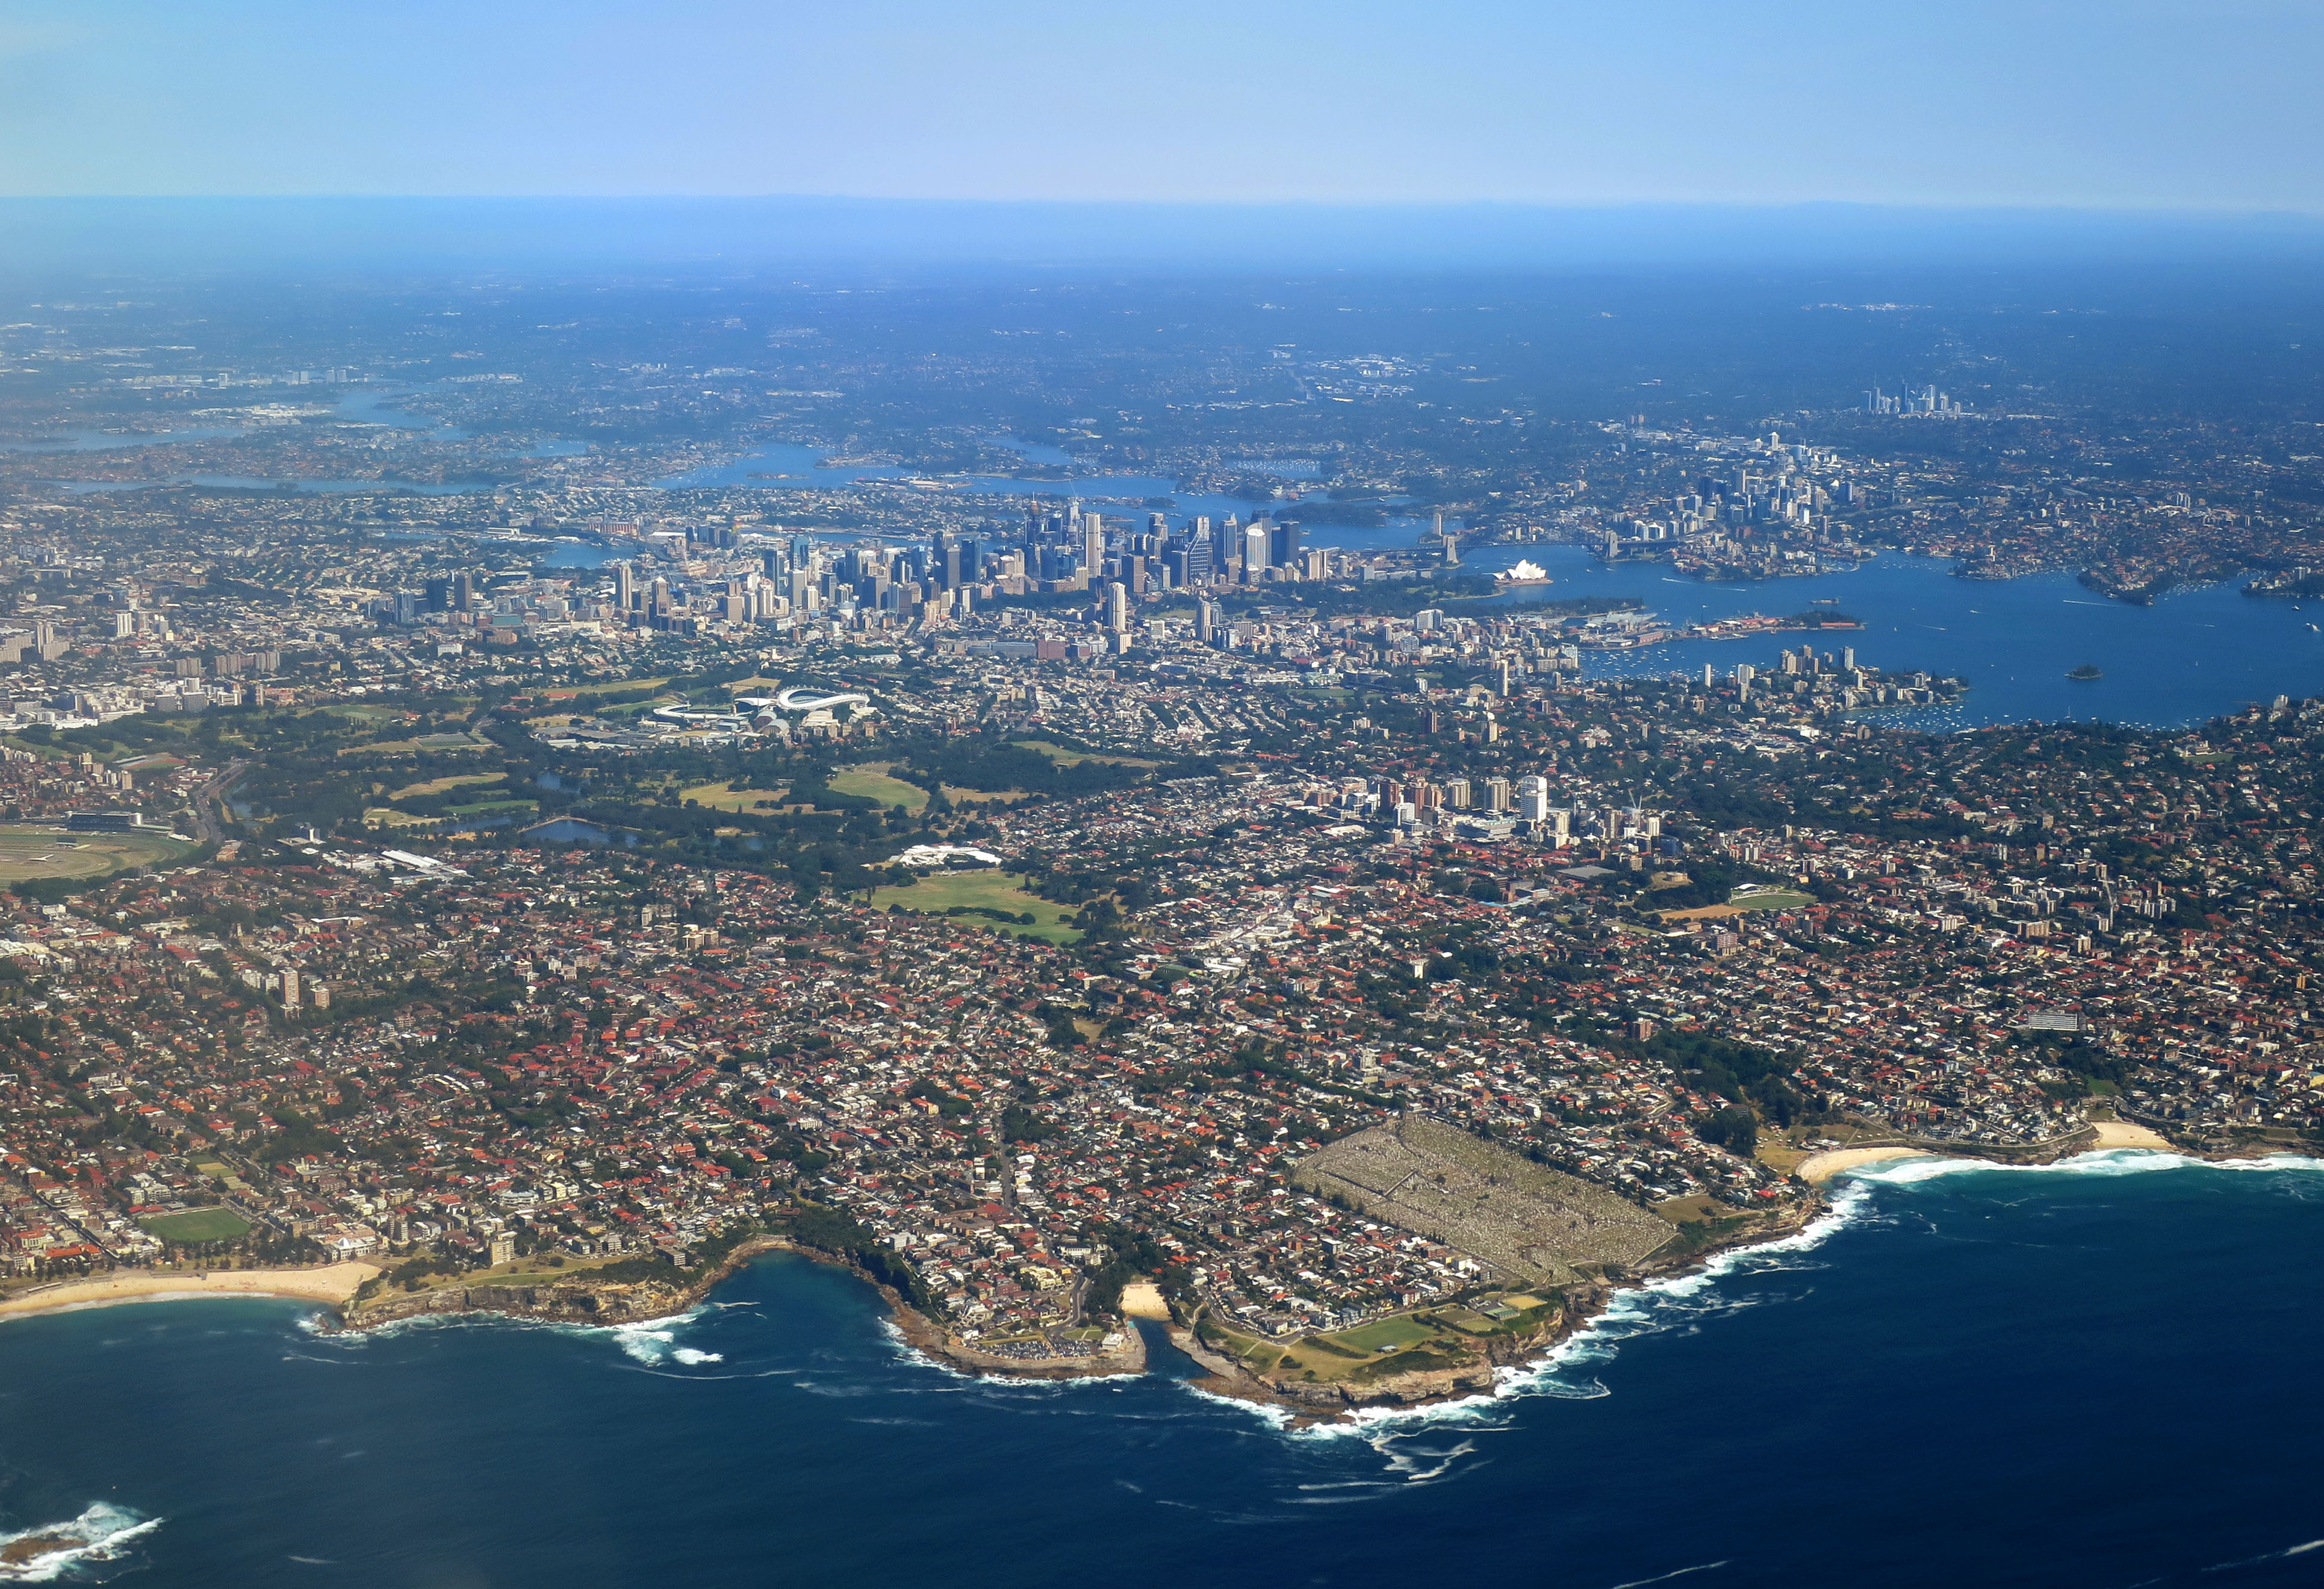 Sydney looking west